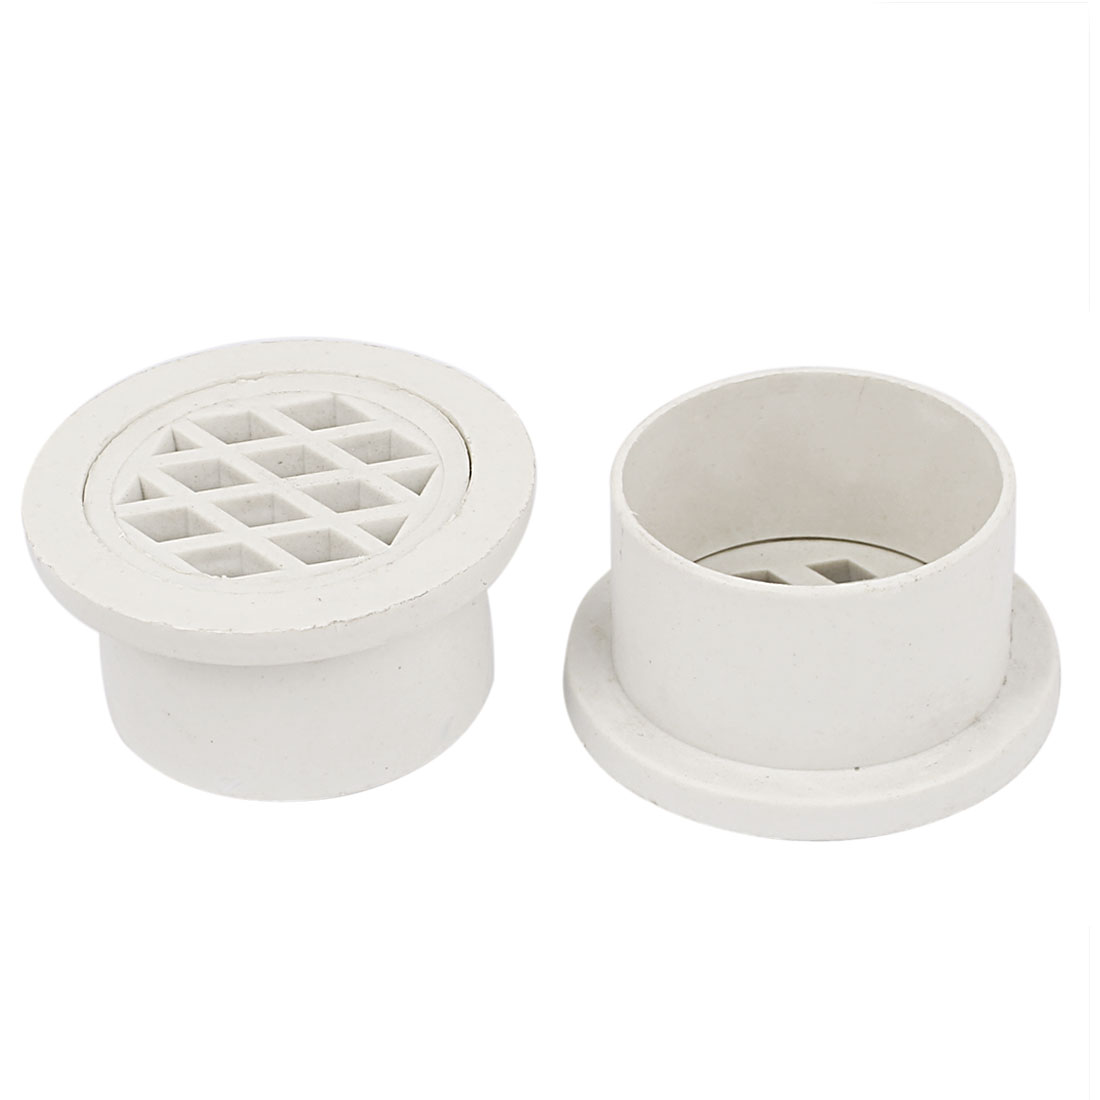 Basement Toilet White PVC Round Strainer Floor Drain Cover 2pcs